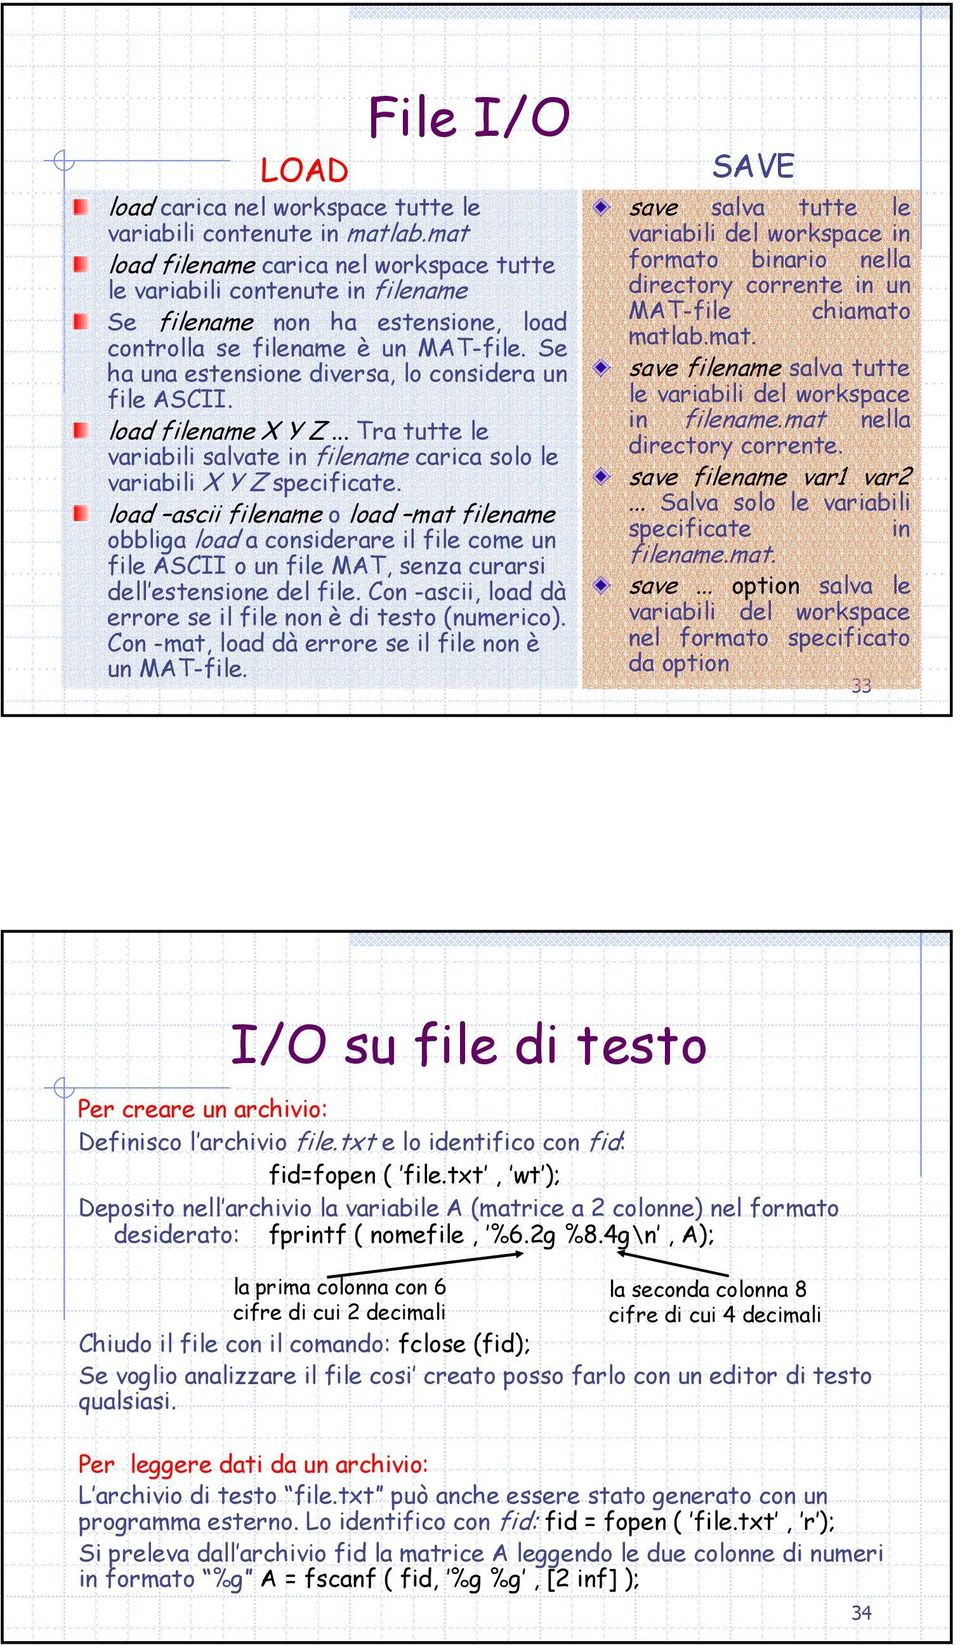 Se ha una estensione diversa, lo considera un file ASCII. load filename X Y Z... Tra tutte le variabili salvate in filename carica solo le variabili X Y Z specificate.